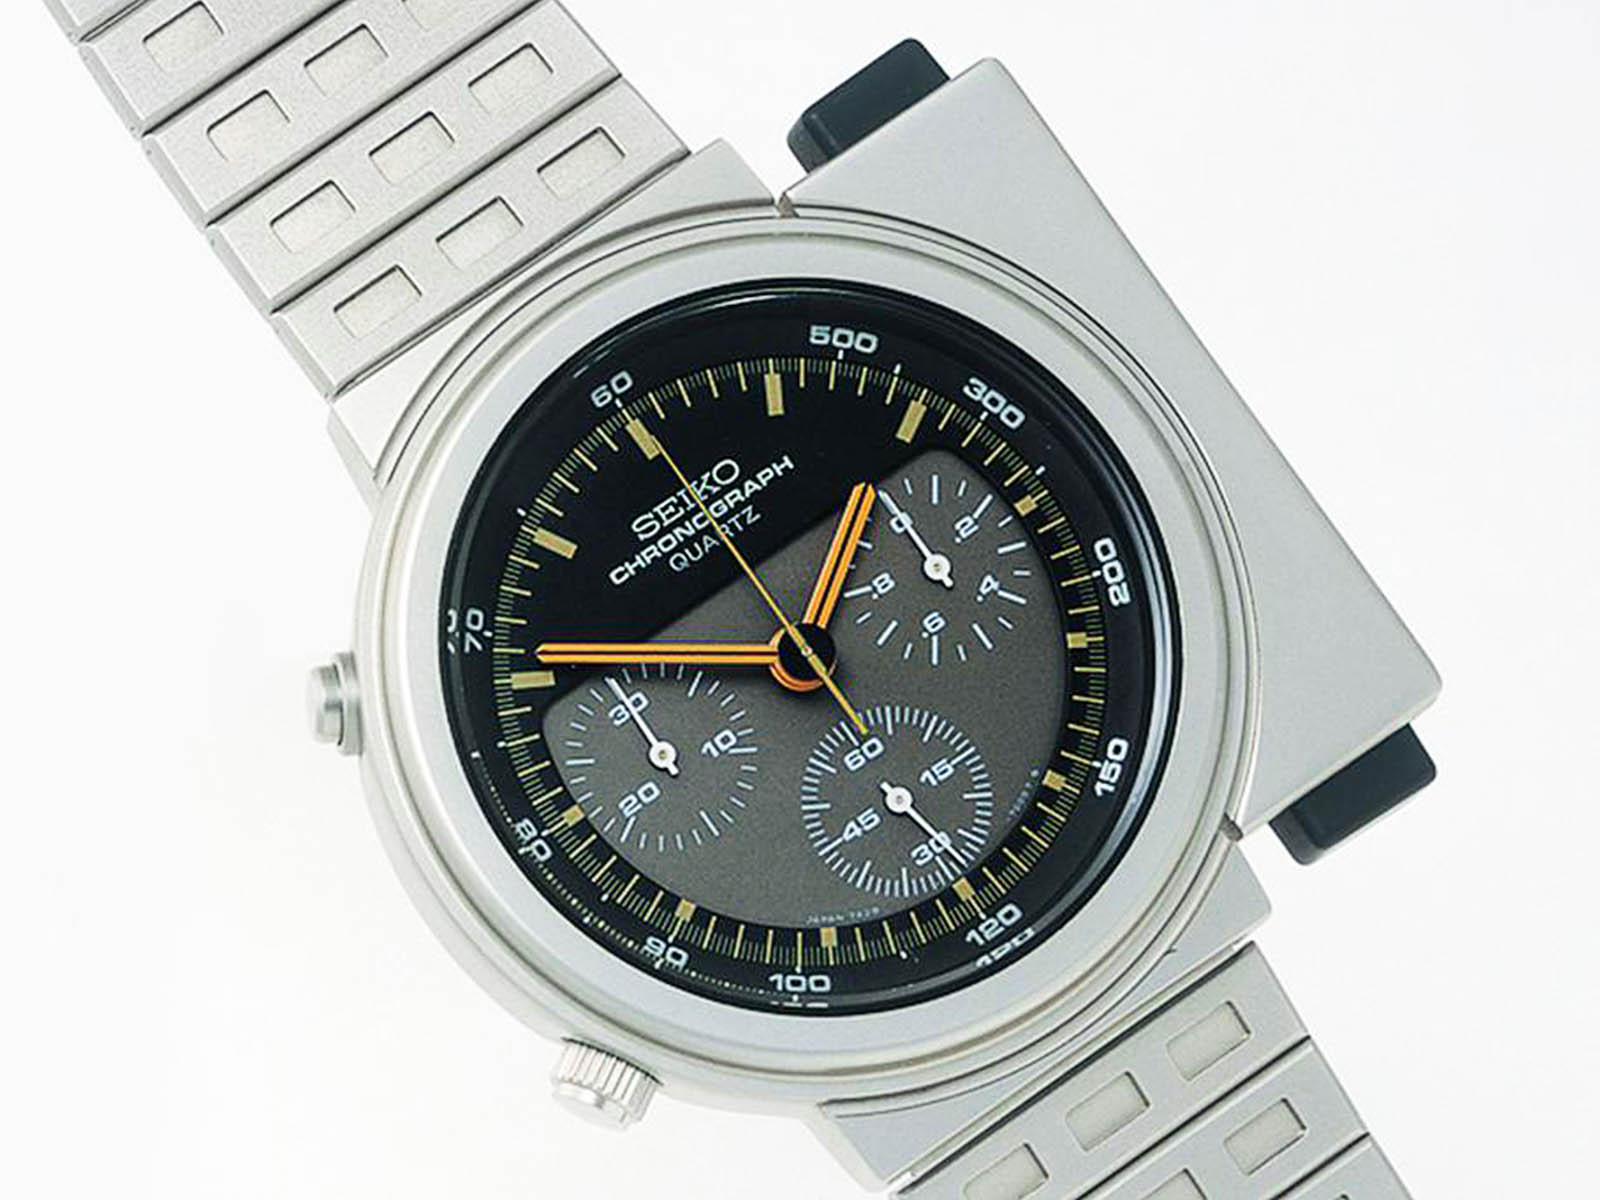 seiko-the-world-s-first-analog-quartz-watch-with-chronograph-1983.jpg